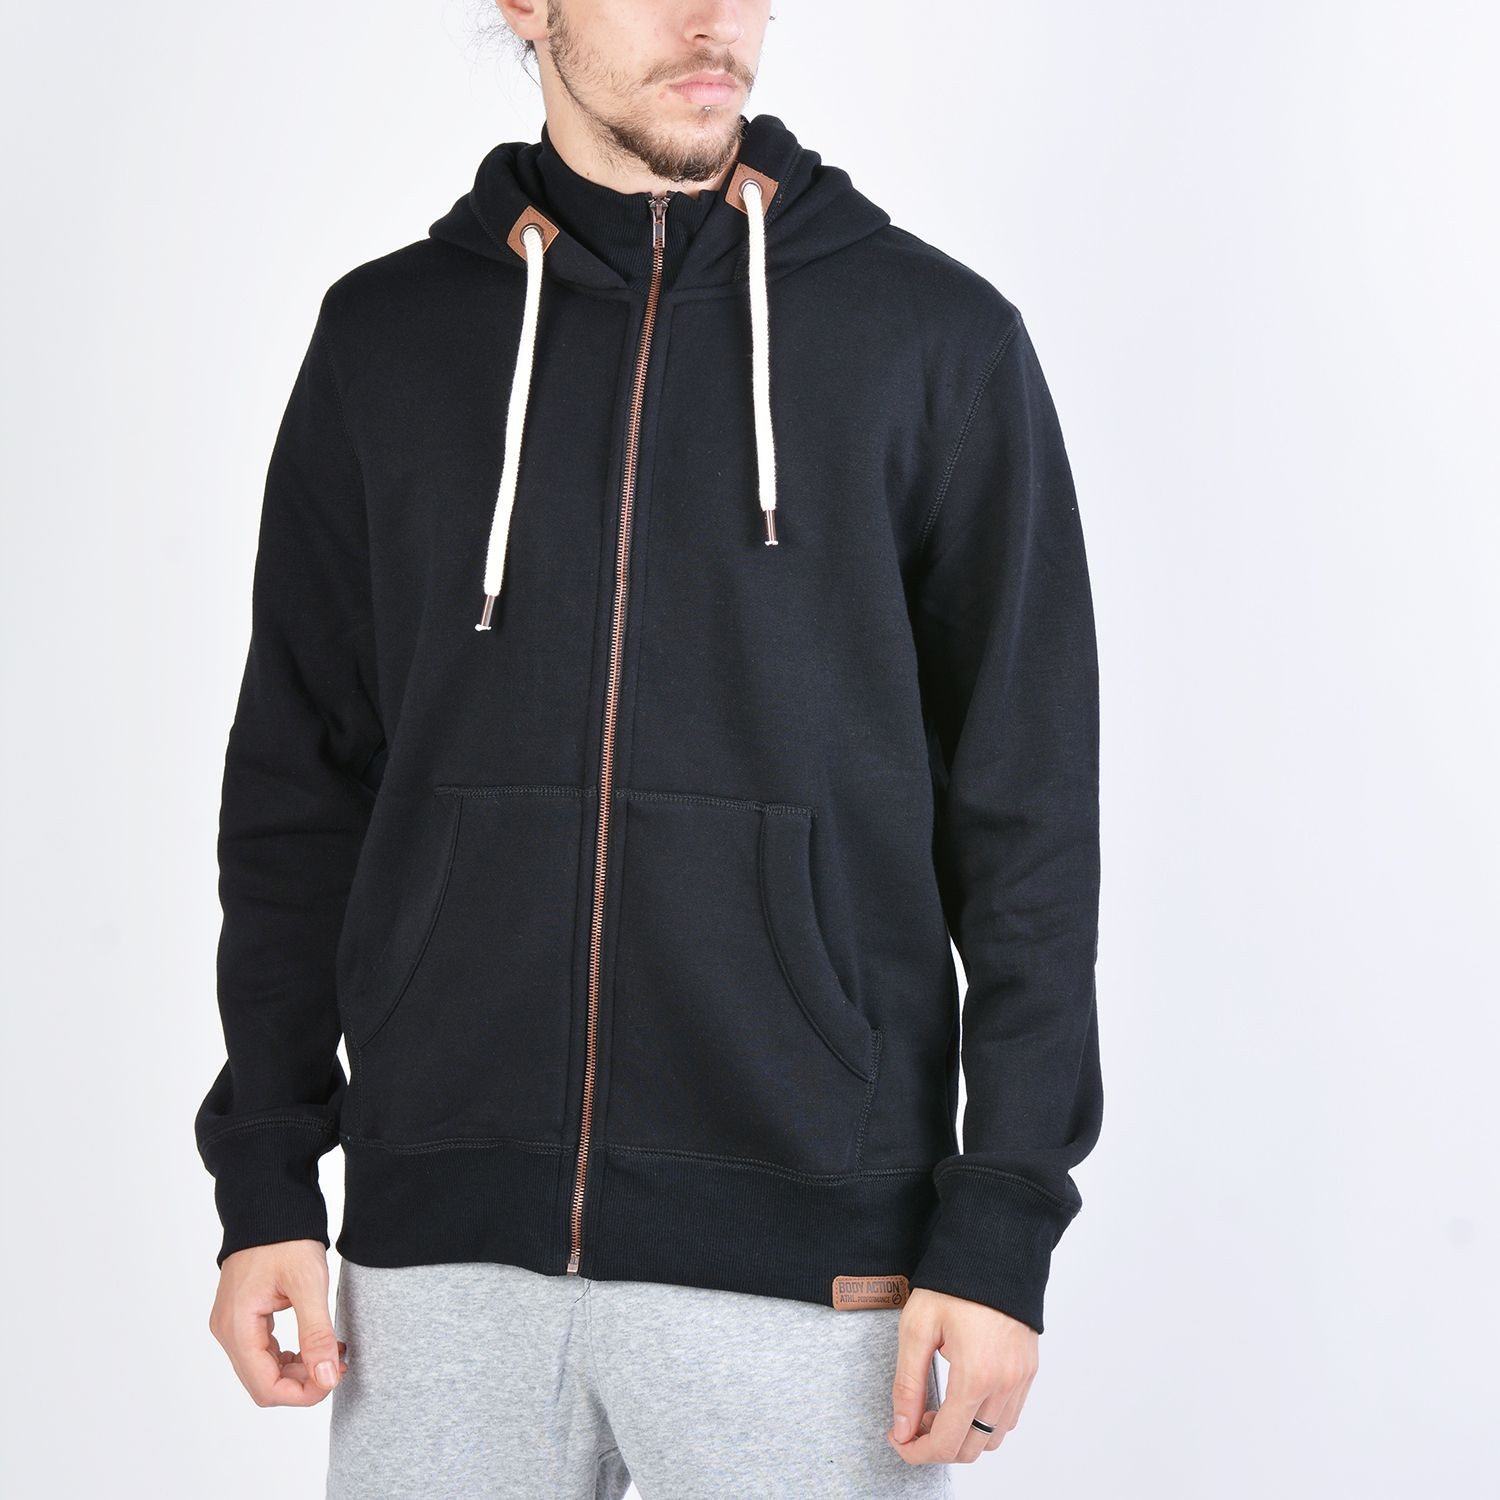 Body Action Hooded Sweat Jacket - Ανδρική Ζακέτα (9000041218_1899)